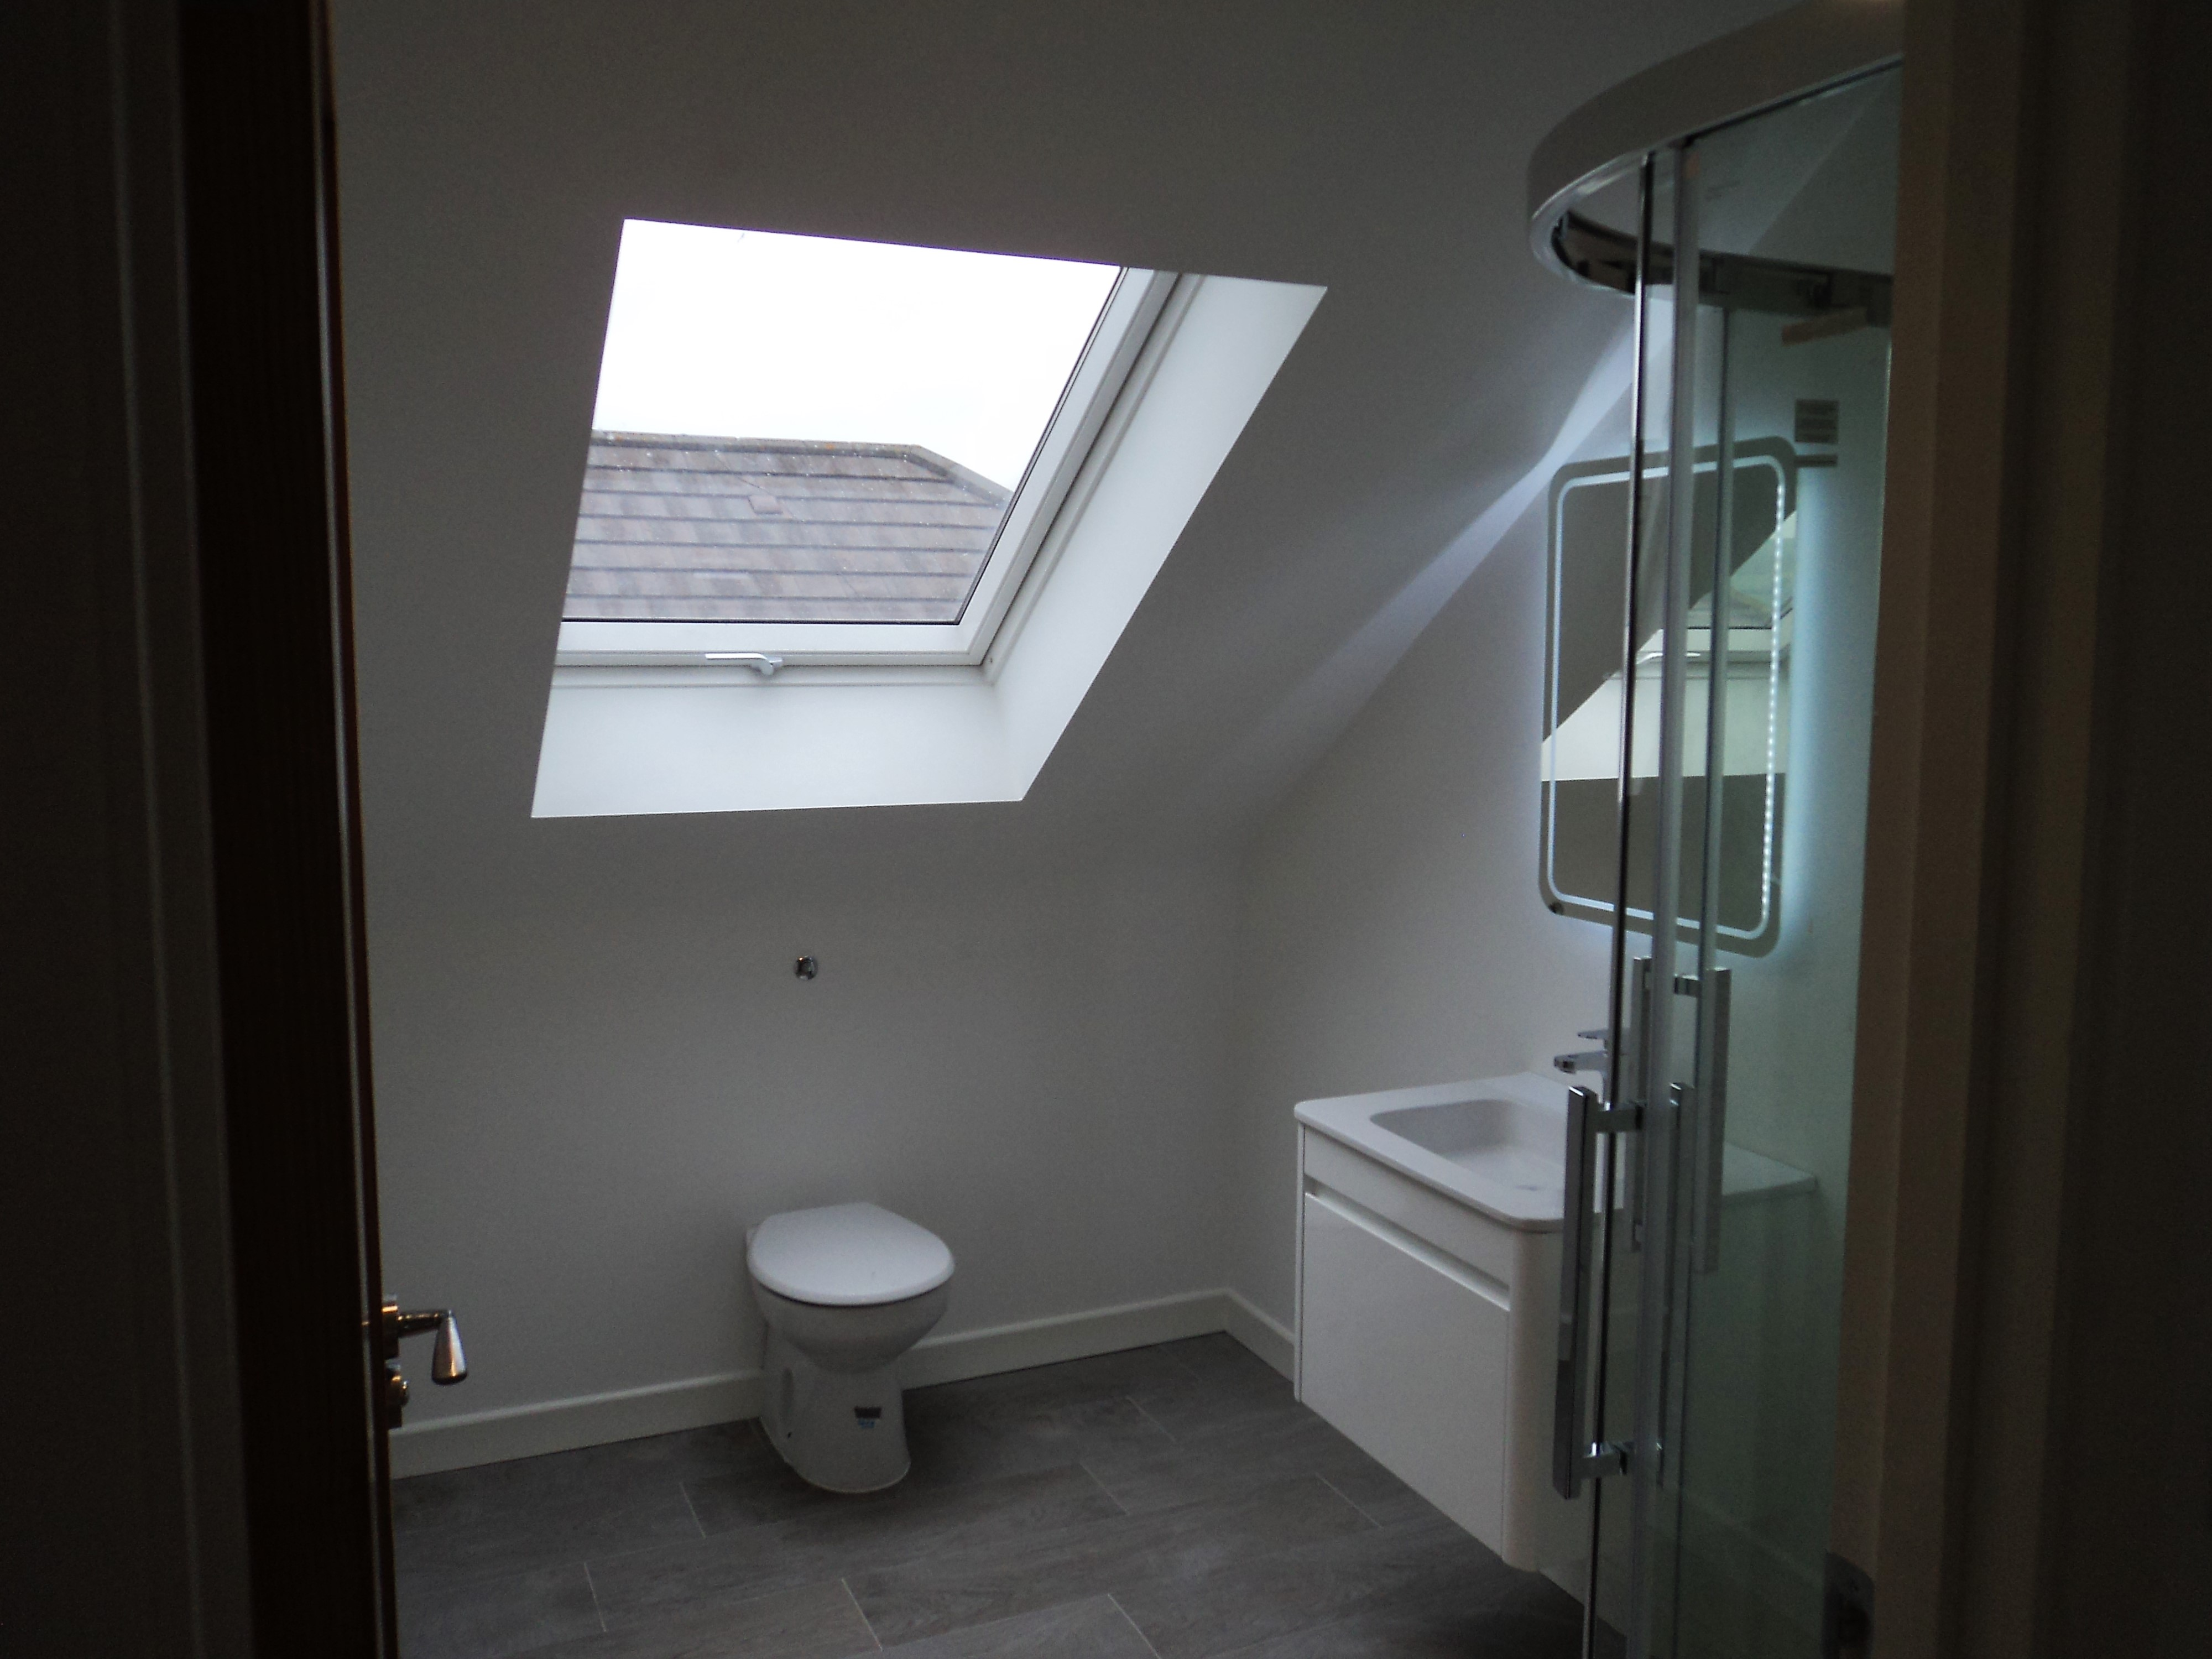 Attic loft conversion with new bathroom in Redcross, Co. Wicklow